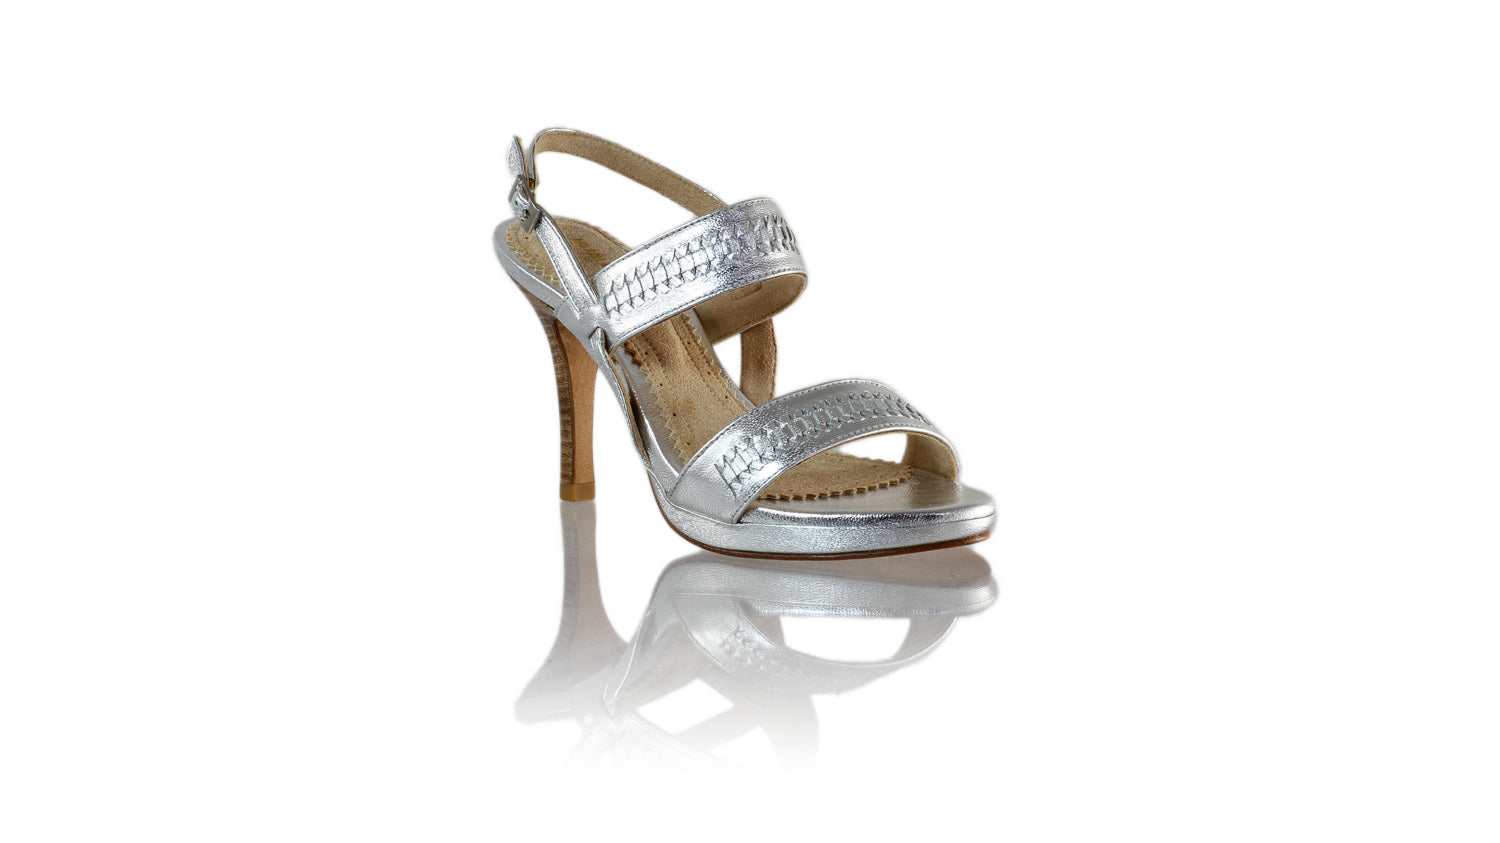 Leather-shoes-Sahara SH PF 90mm - Silver-sandals higheel-NILUH DJELANTIK-NILUH DJELANTIK